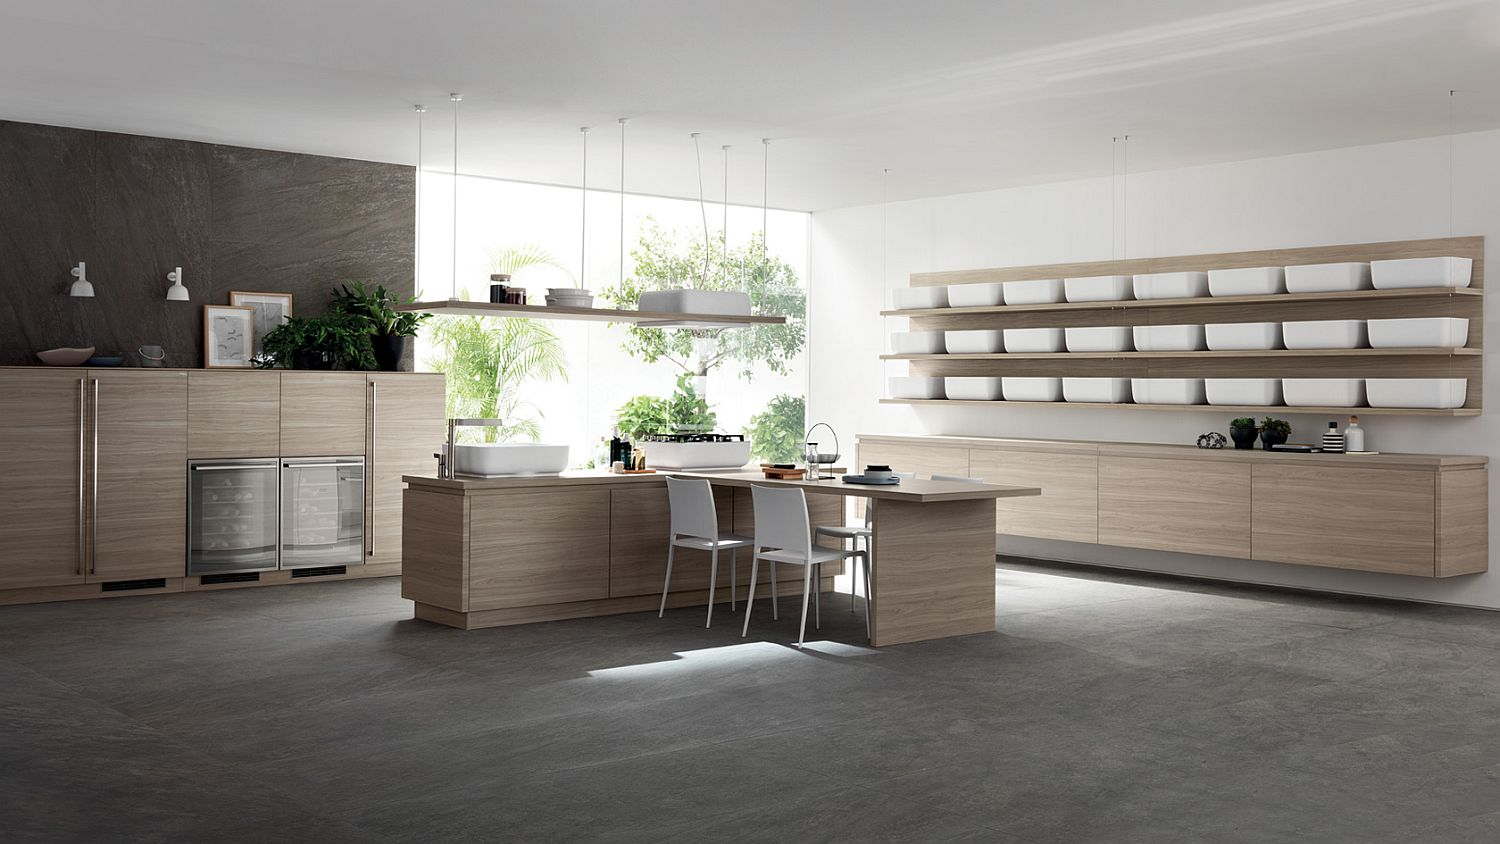 Japanese minimalism becomes the defining quality of this contemporary kitchen